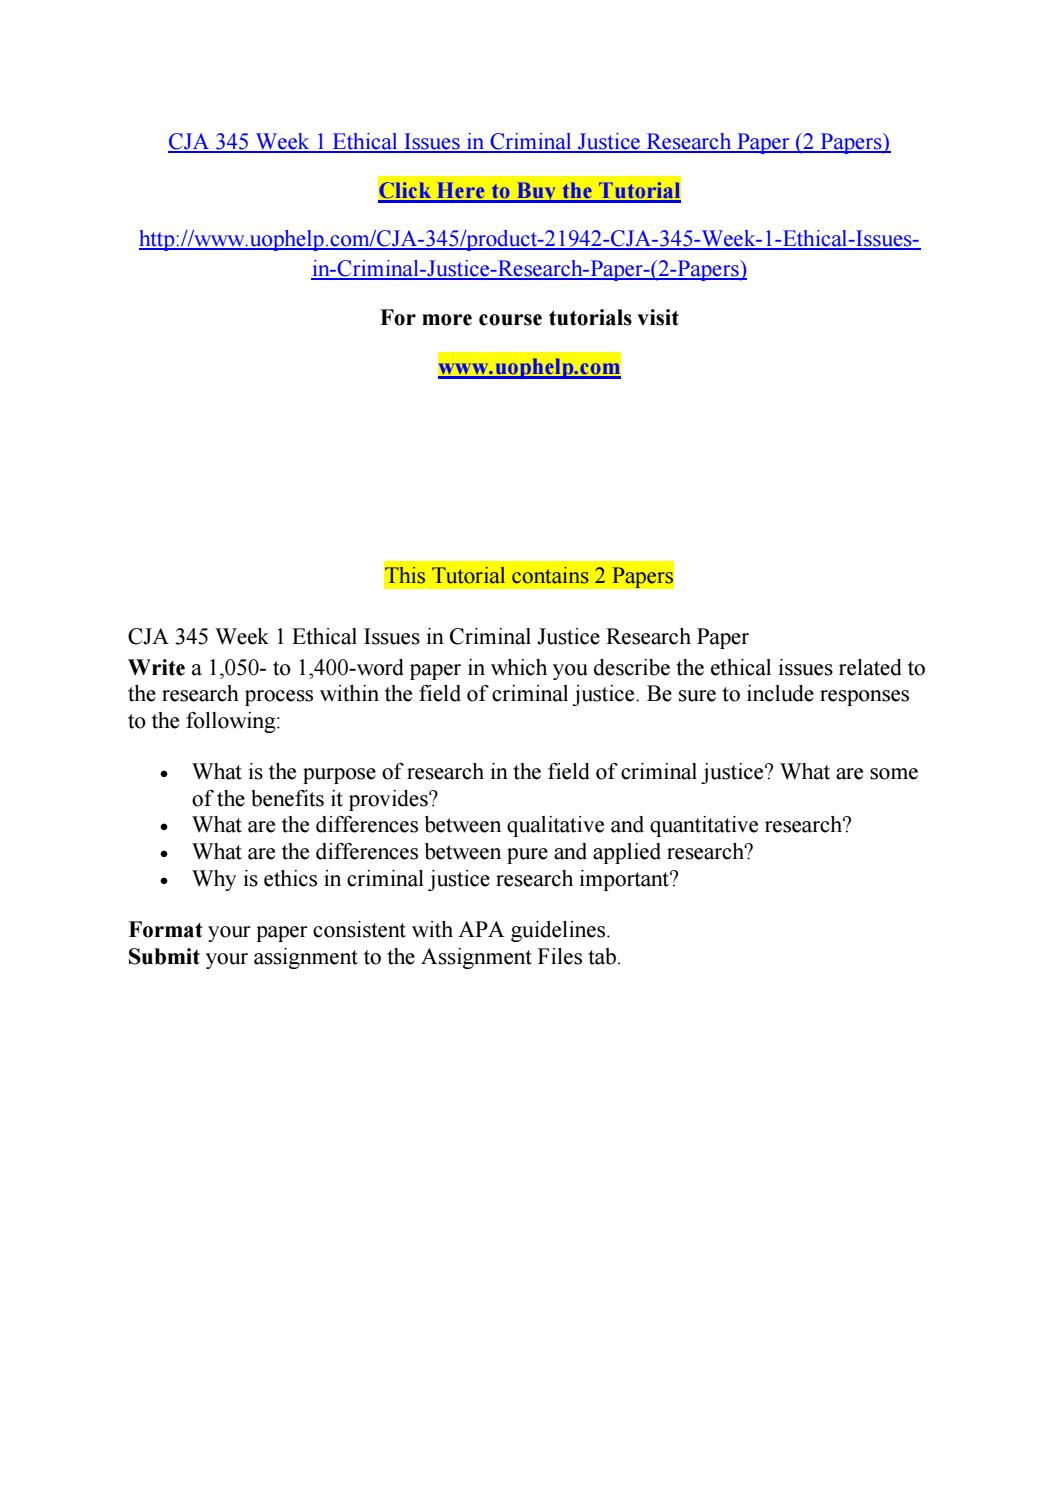 005 Research Paper Criminal Justice Papers Page 1 Formidable Examples Of Free Full